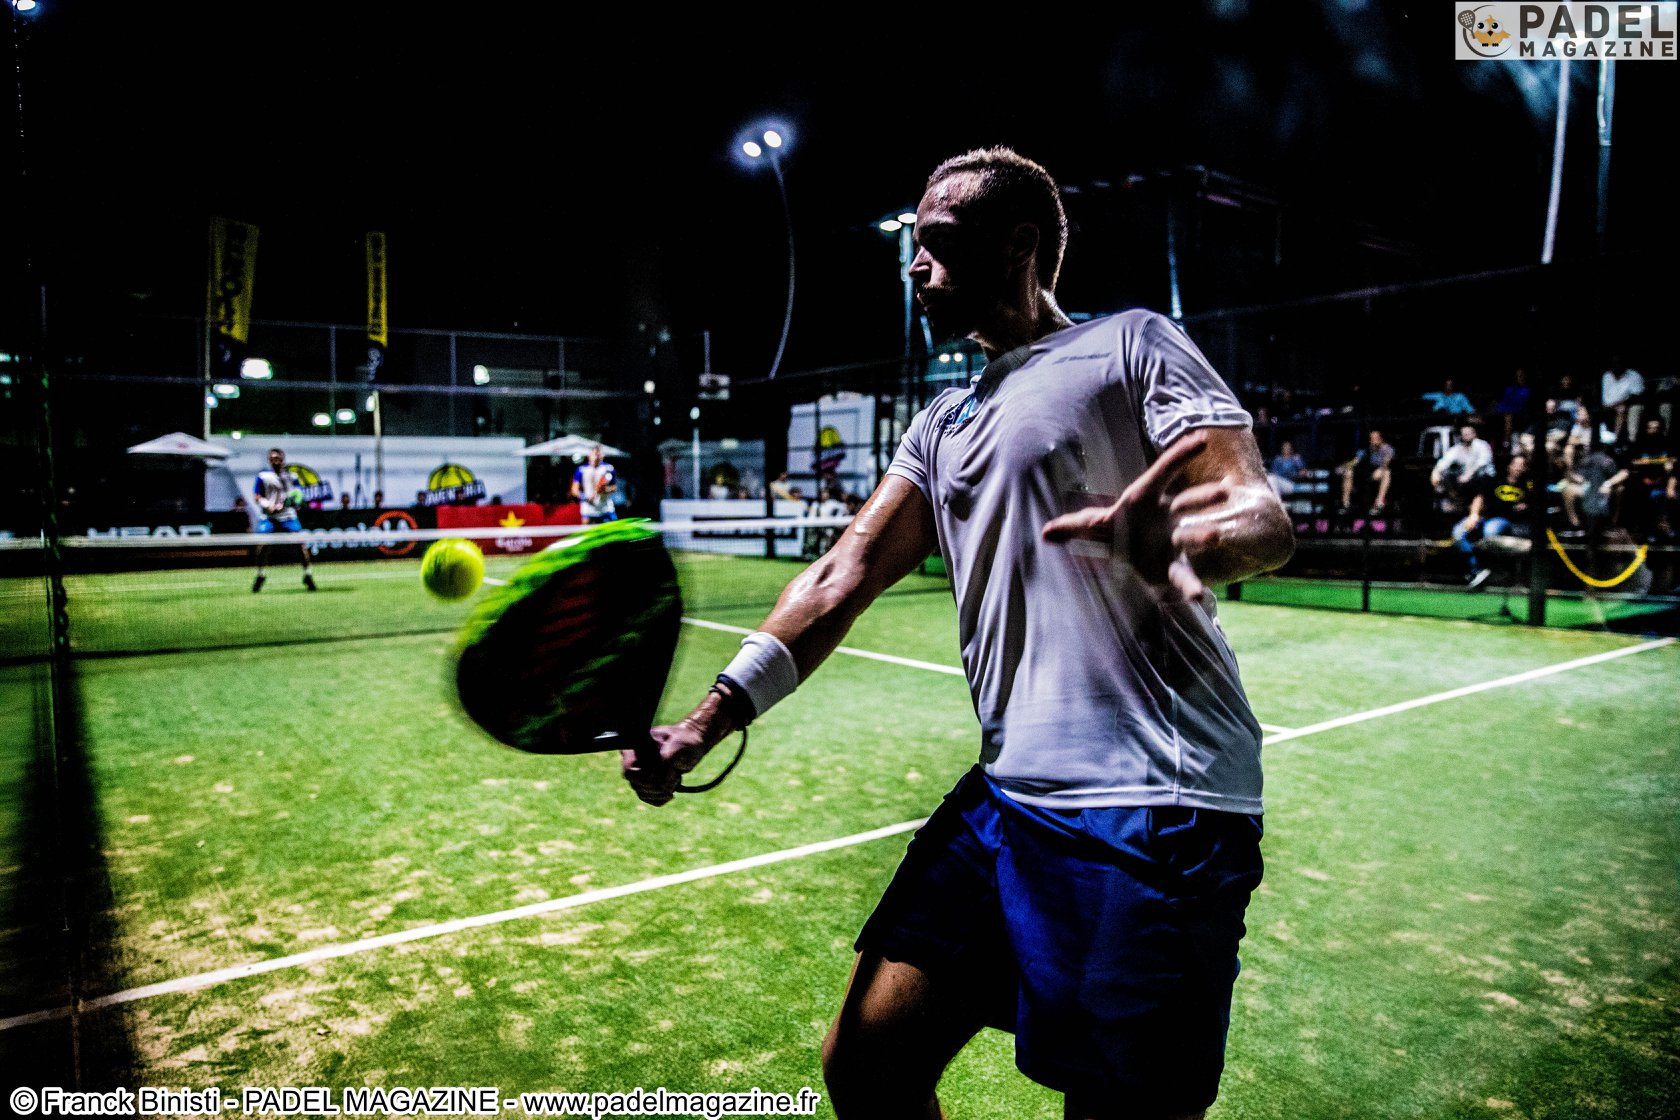 Do we have to come to the net at padel ?